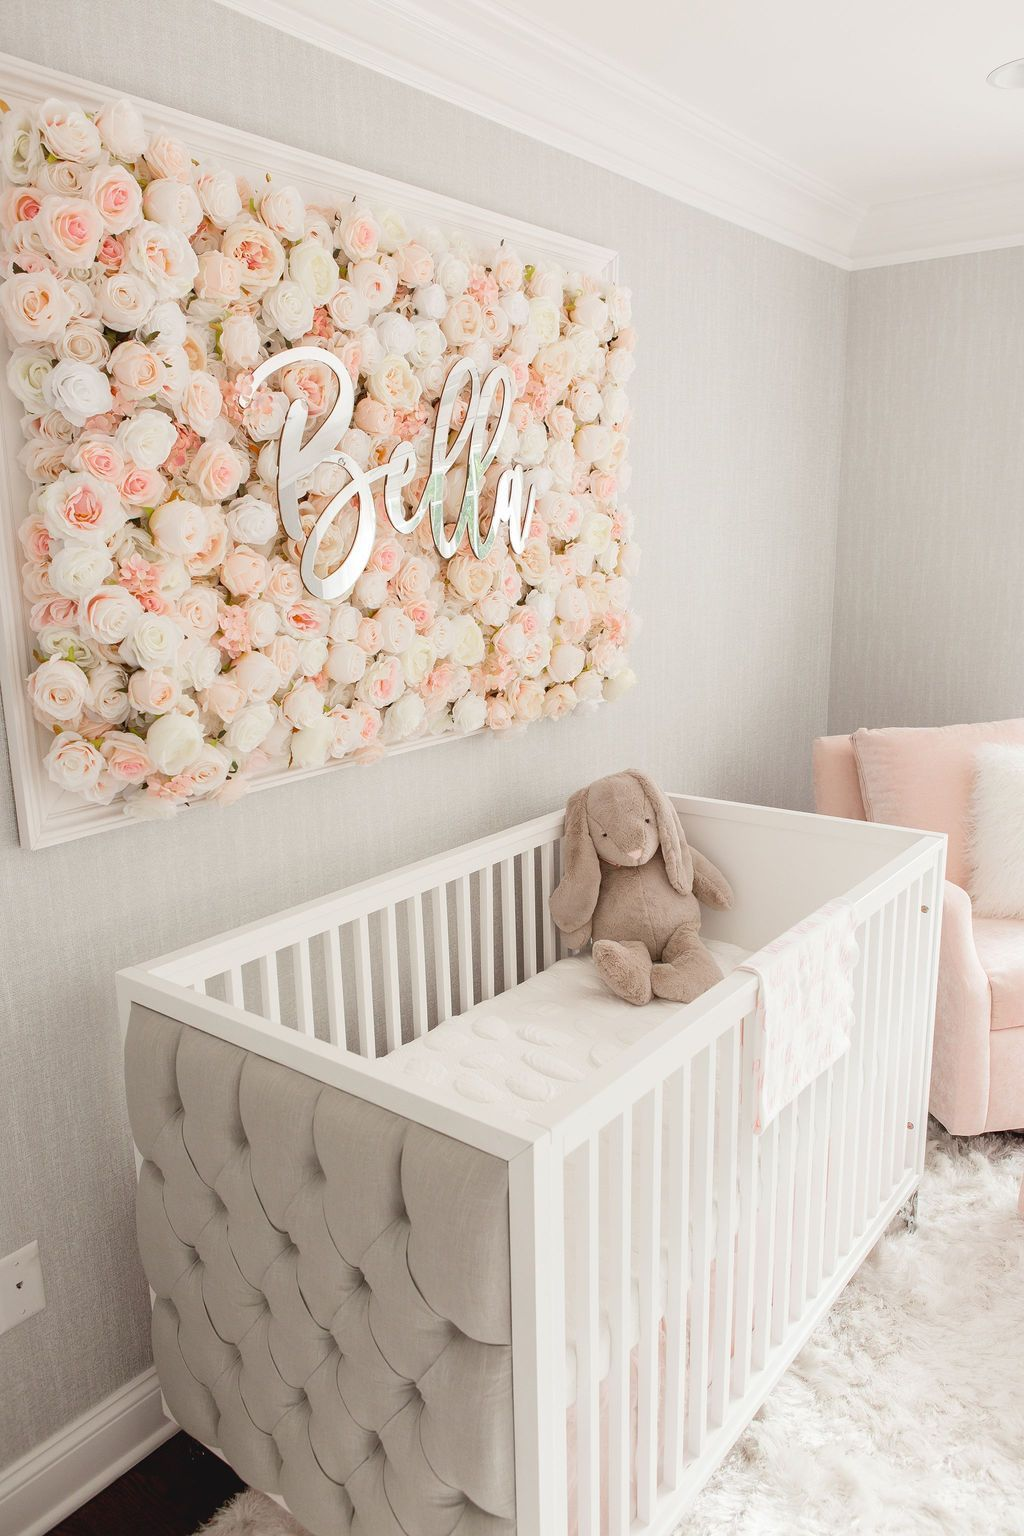 41 Cute And Cozy Bedroom Decor For Baby Girl is part of Baby nursery inspiration - Picking out decor for your little girl's bedroom could end up being a memorable undertaking that offers you plenty of […]